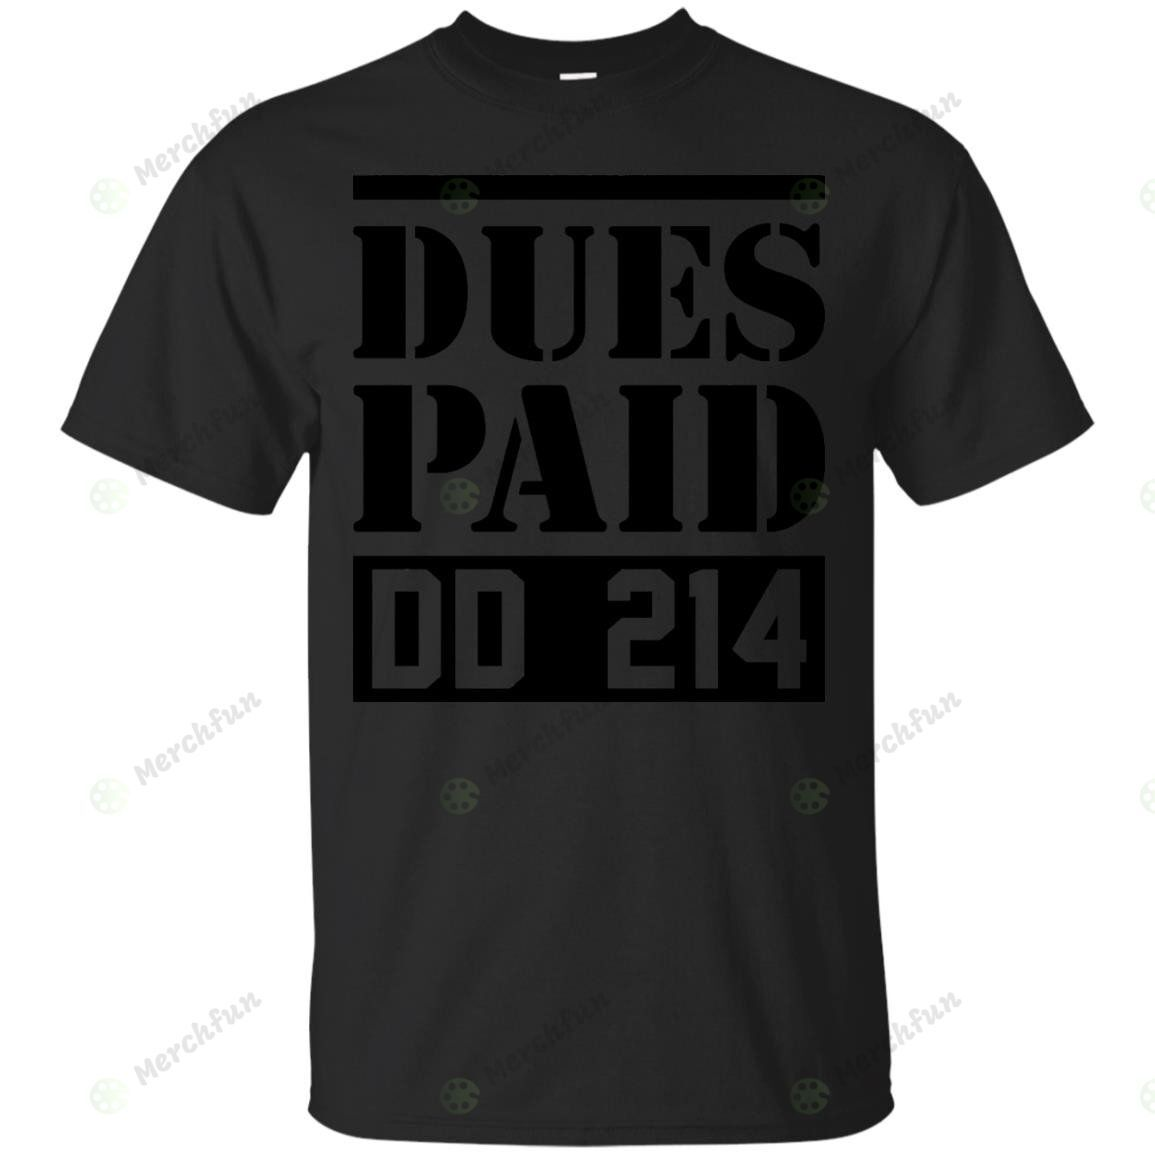 Dues Paid Proud Veteran DD-214 - T-Shirt